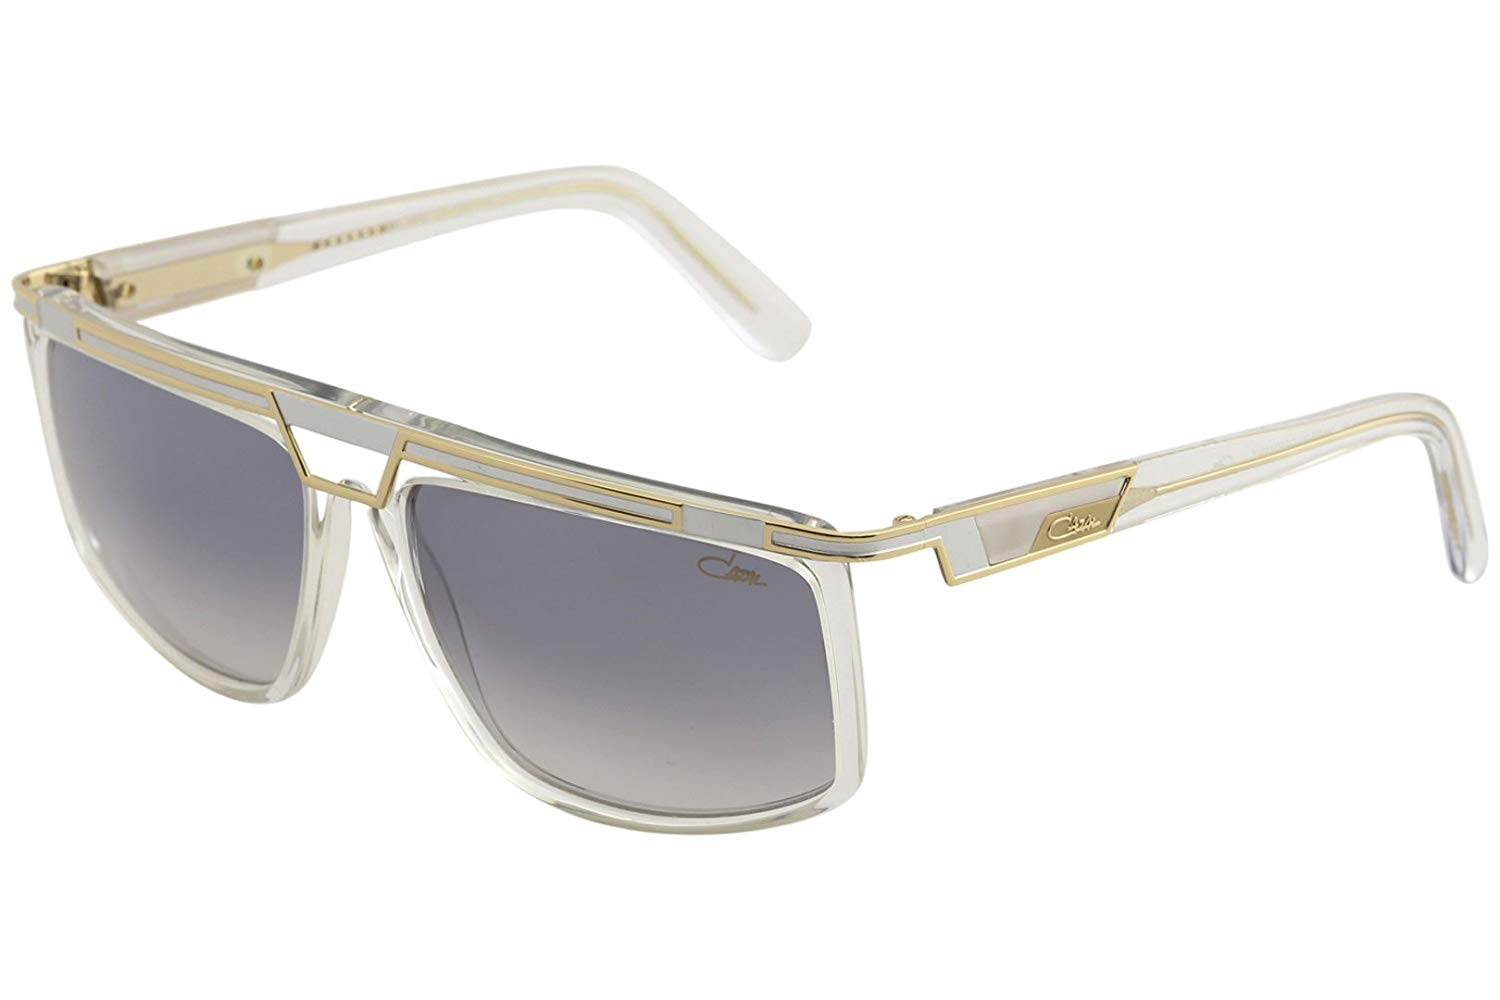 de5b4b25ef1 Get Quotations · Cazal 8036 Sunglasses 003SG Crystal-Gold Light Grey Gradient  Lens 62mm